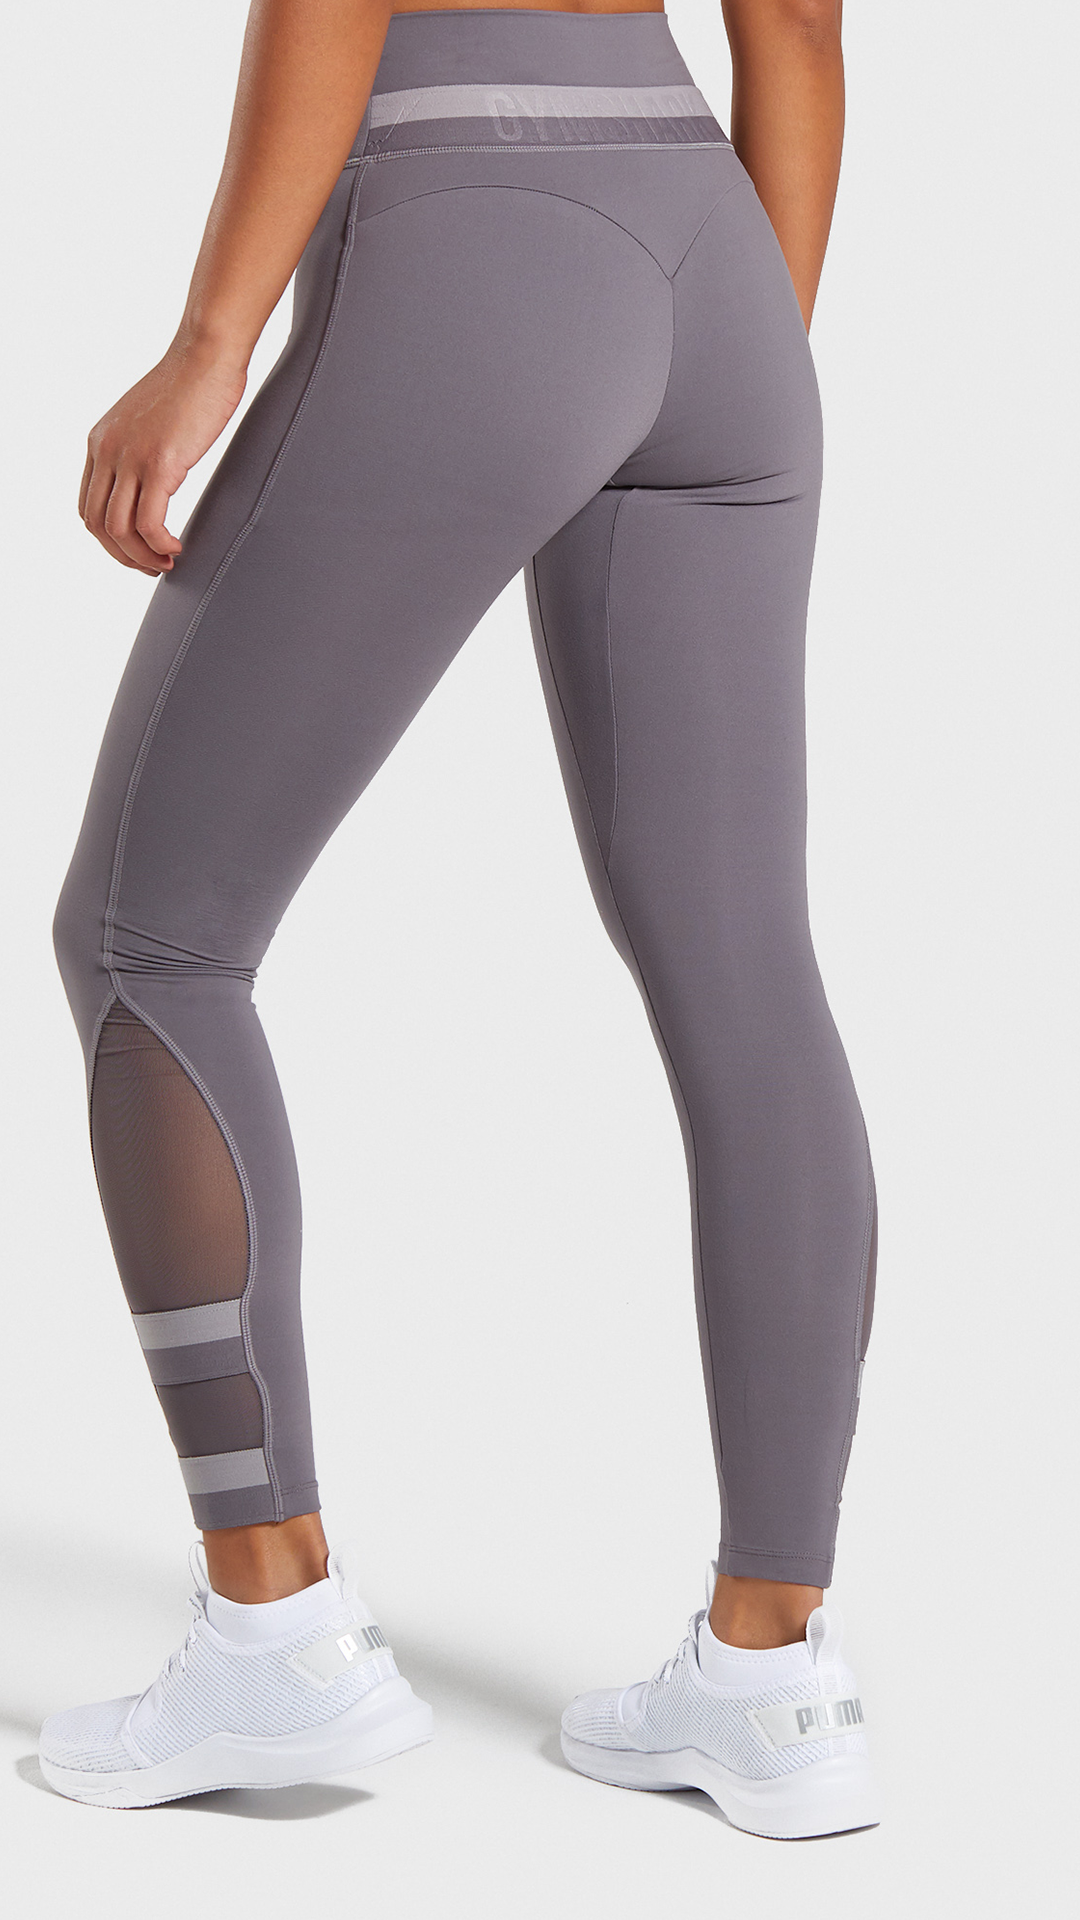 0f7d354b17aee Gymshark Empower Leggings - Slate Lavender in 2019 | FIT & VEGAN ...